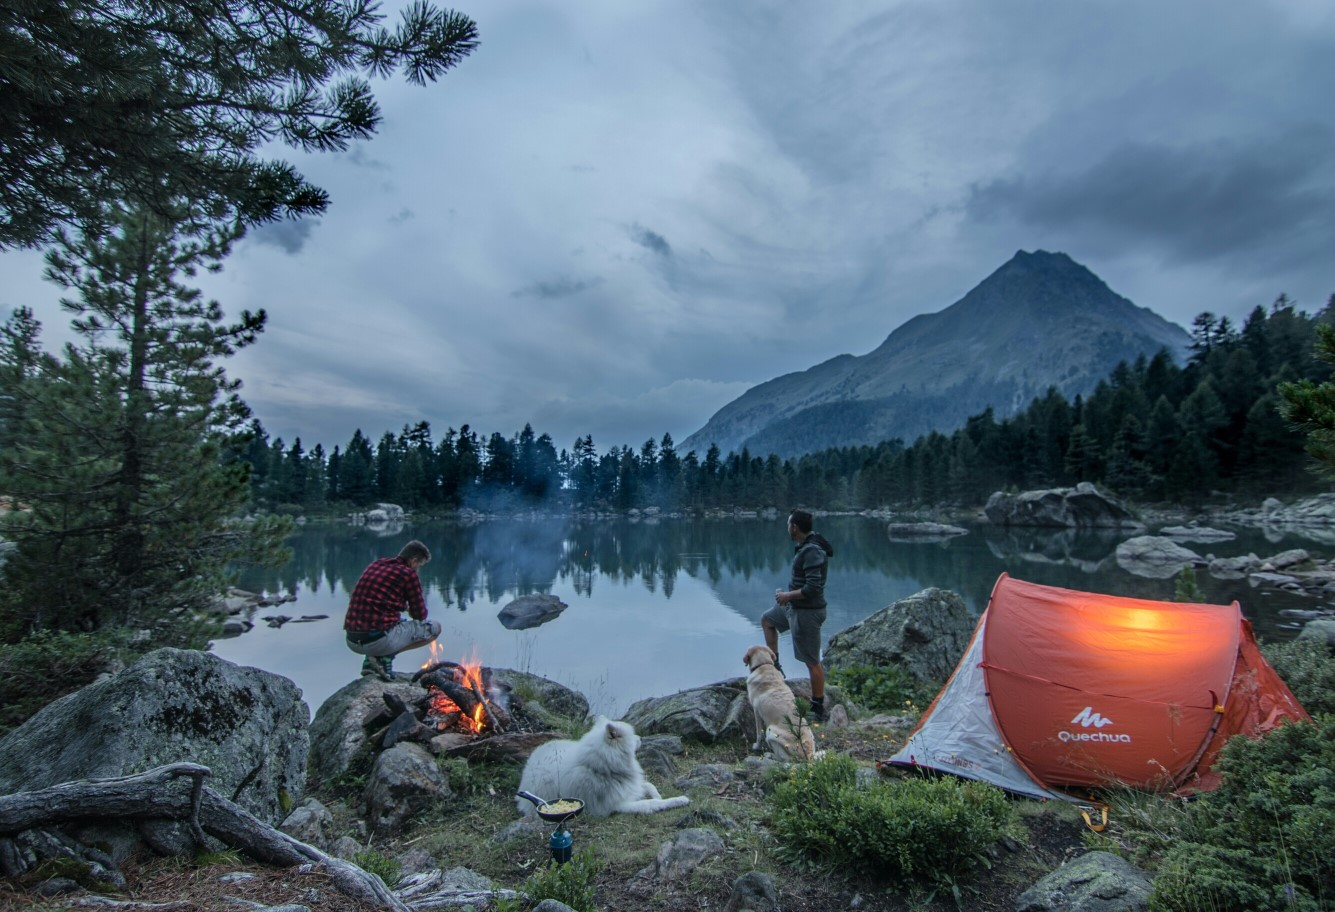 camping with dogs by a lake and mountains